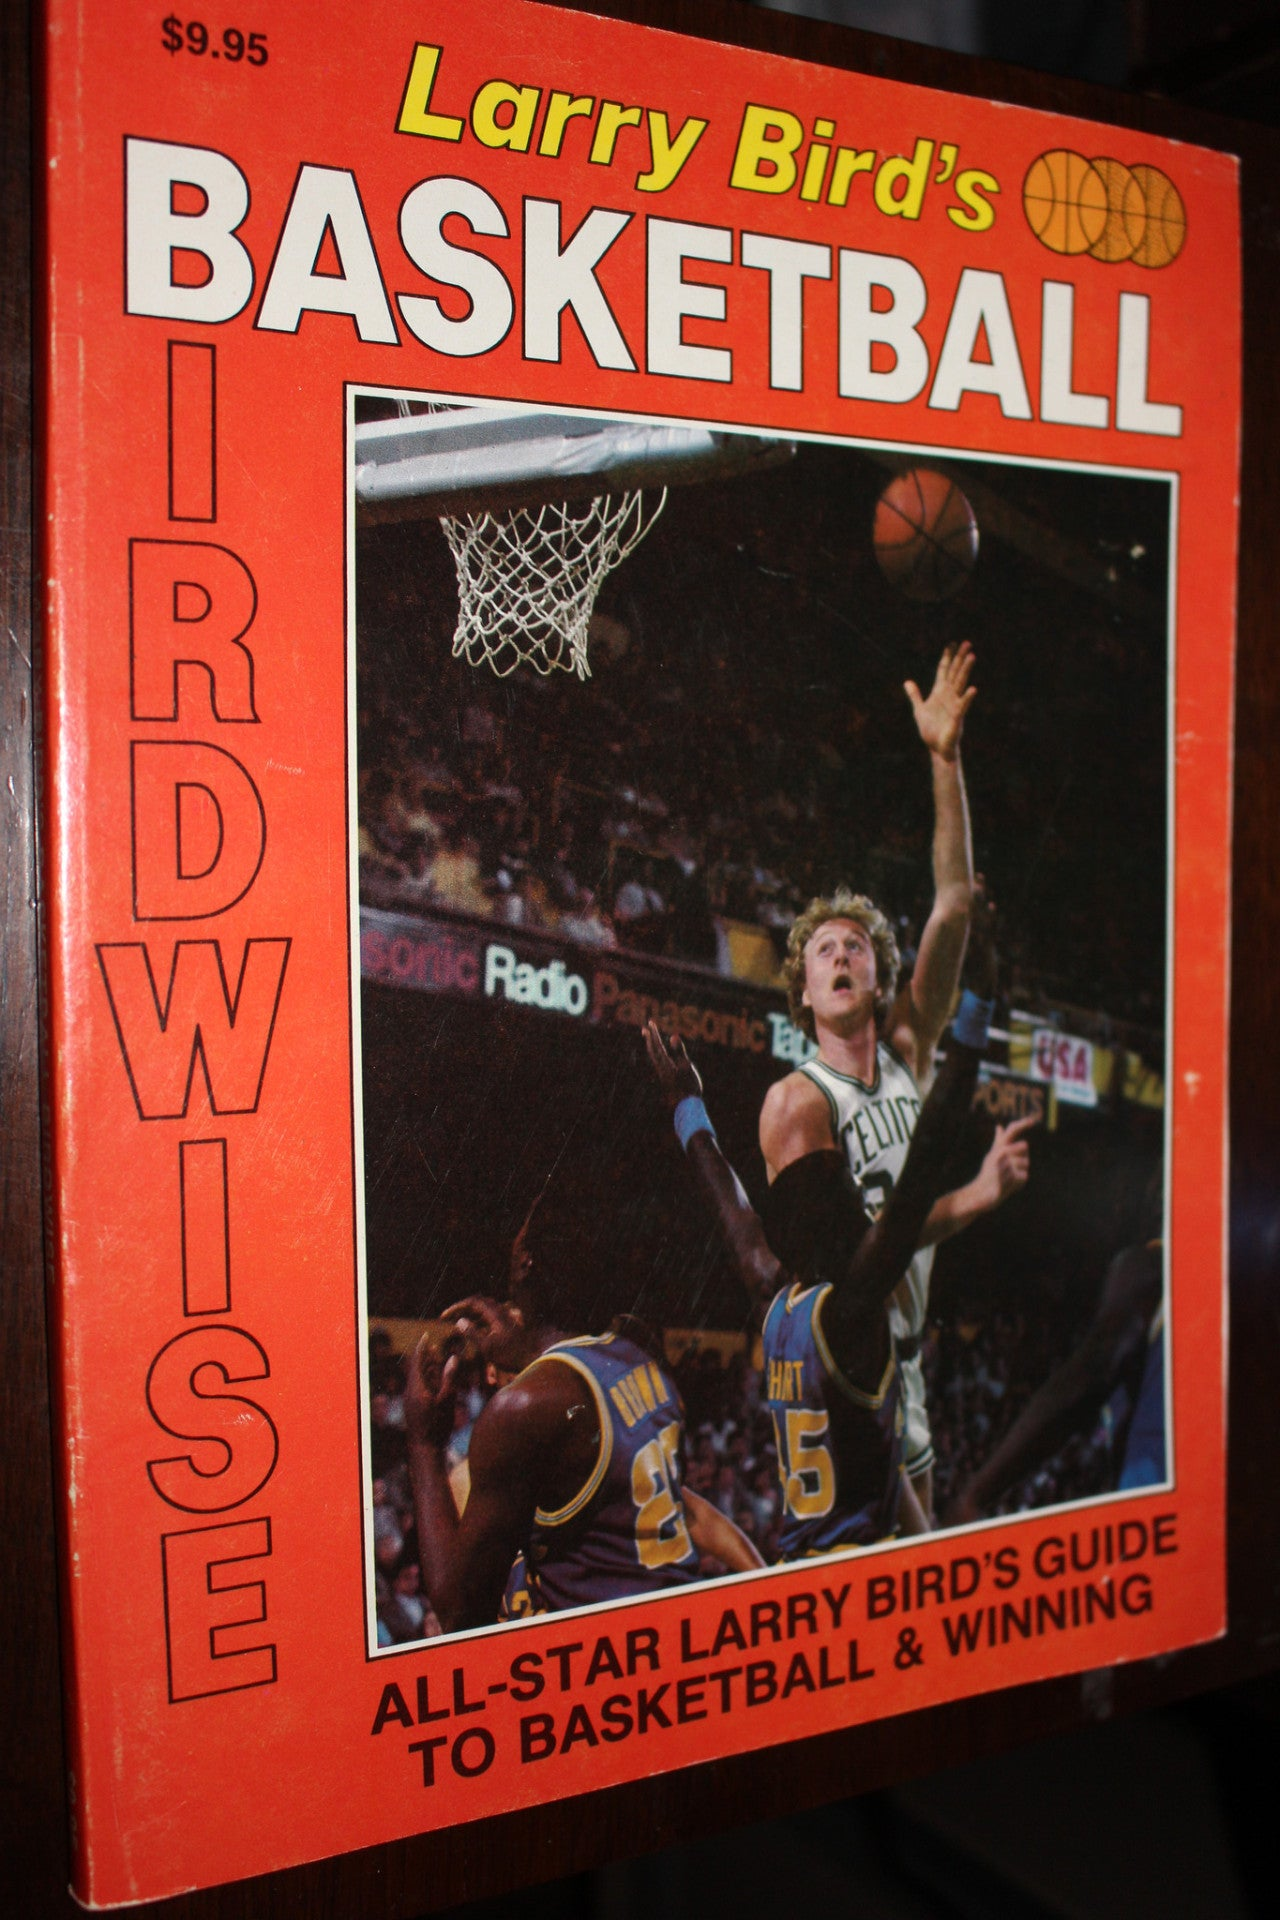 Larry Bird's Birdwise Basketball Oversized Paperback Book - Vintage Indy Sports